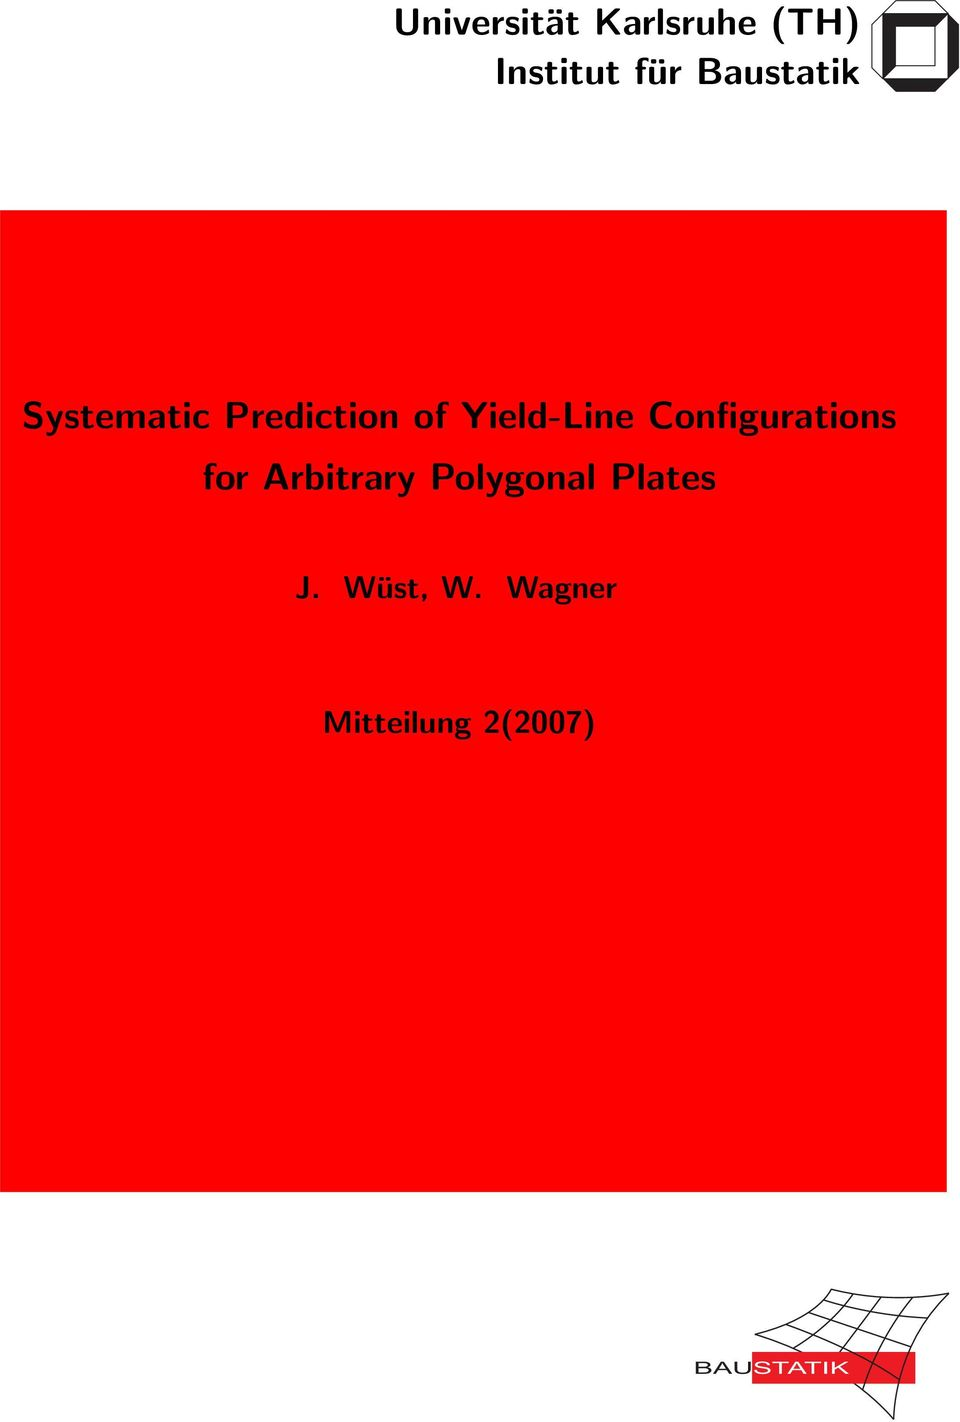 Yield-Line Configurations for Arbitrary